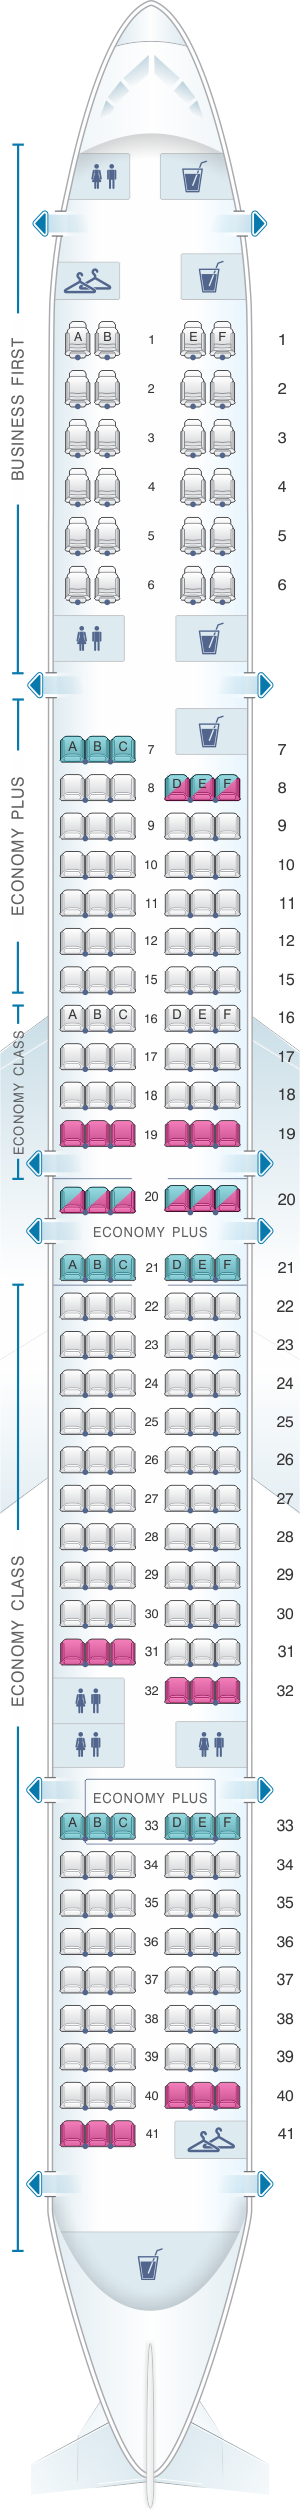 Seat map for United Airlines Boeing B757 300 (753)